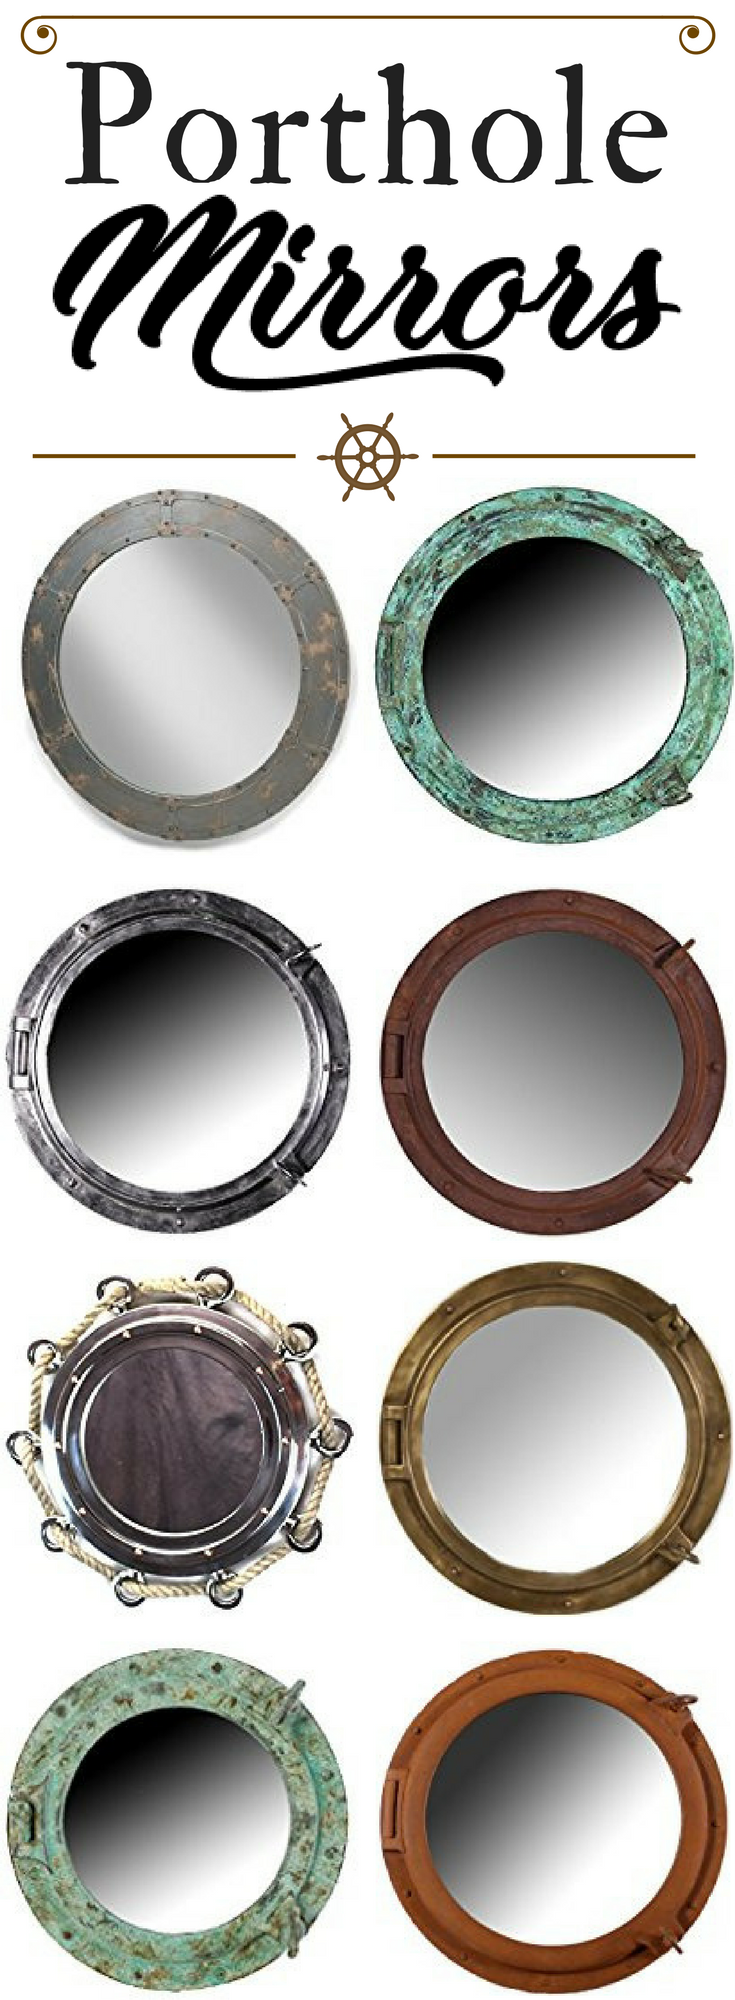 Photo of Porthole Themed Mirrors – Beachfront Decor